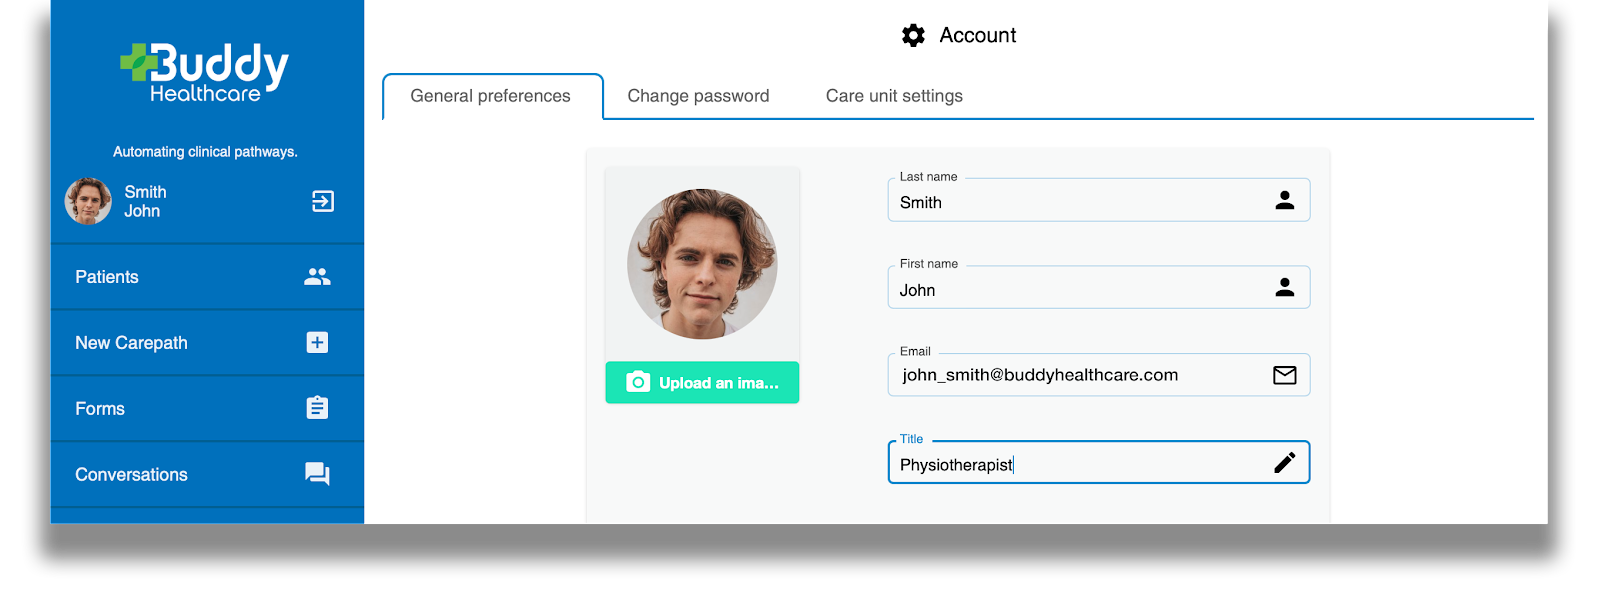 Care personnel dashboard user custom title feature